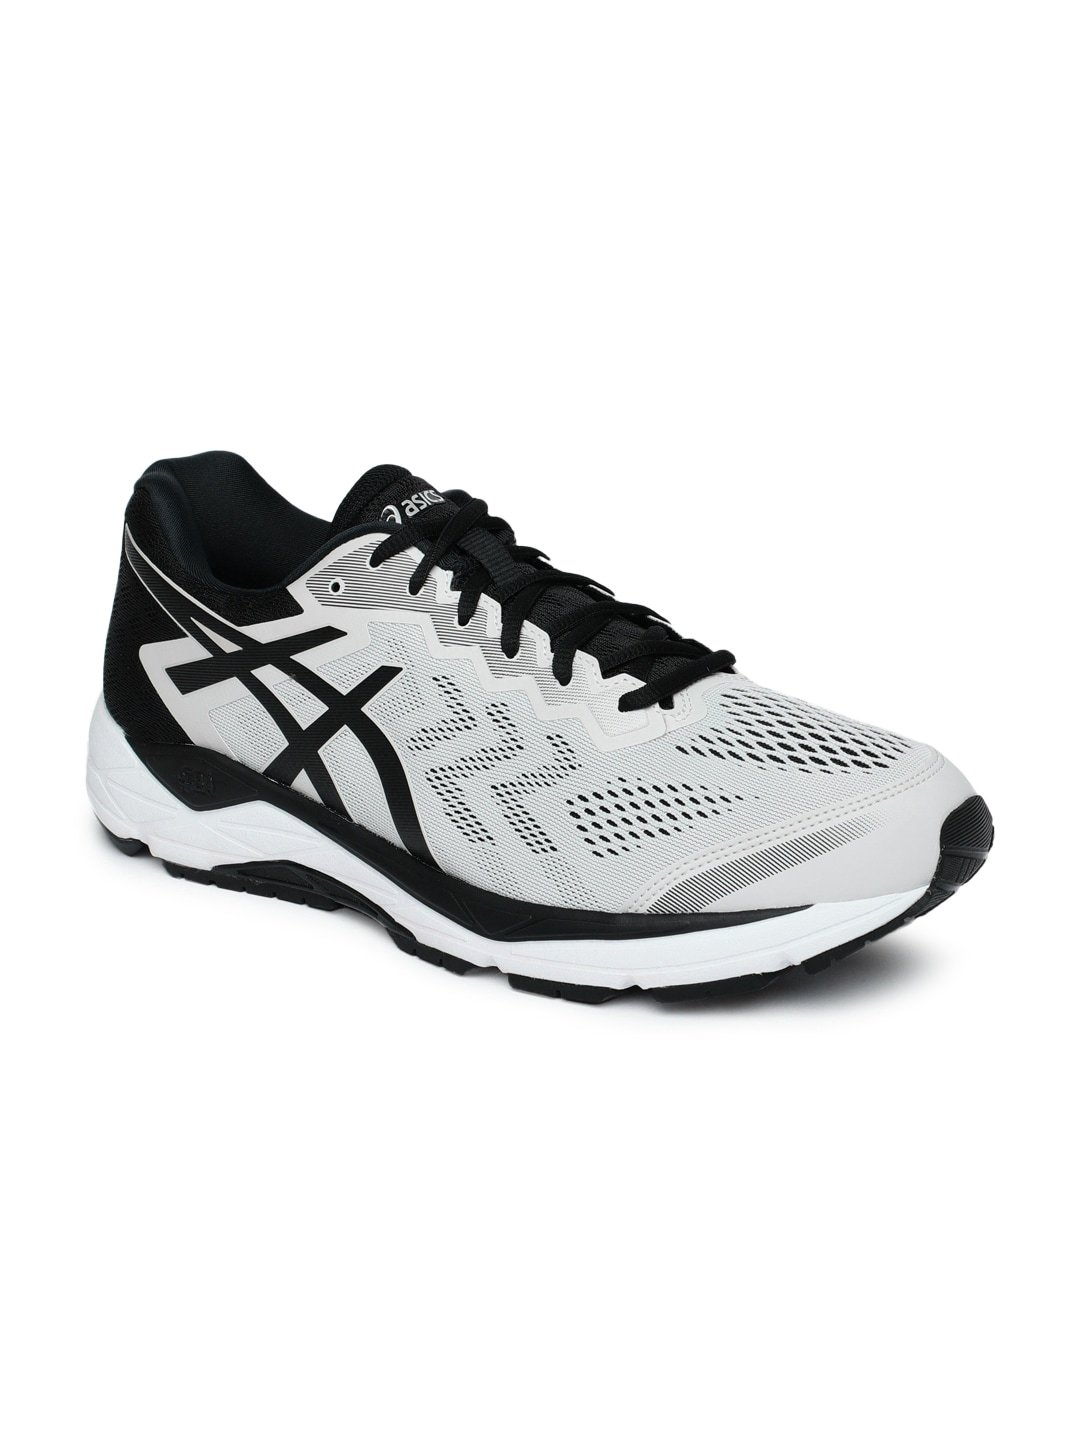 Women Asics Shoes And For Buy Online Myntra Men nmNwOv8y0